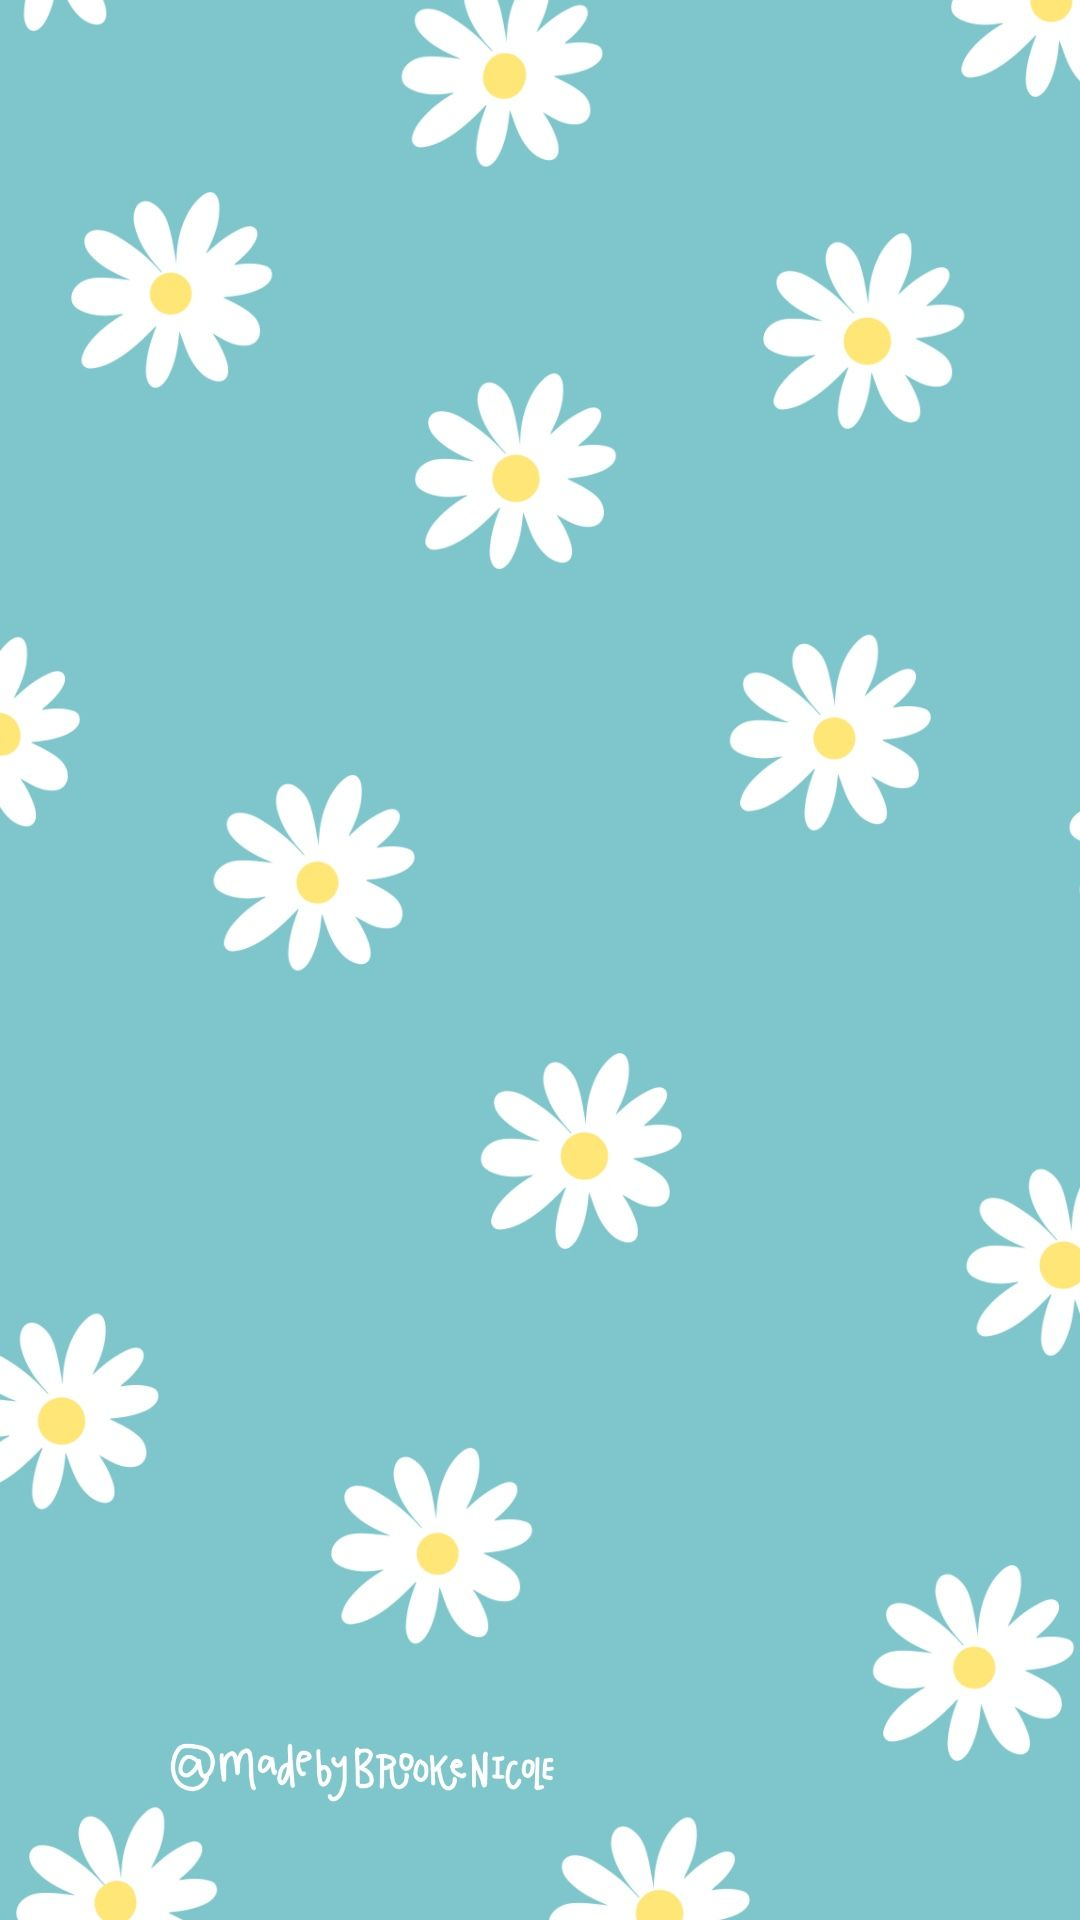 Iphone Wallpaper Fun Flowers Groovy Papel De Parede Do Iphone